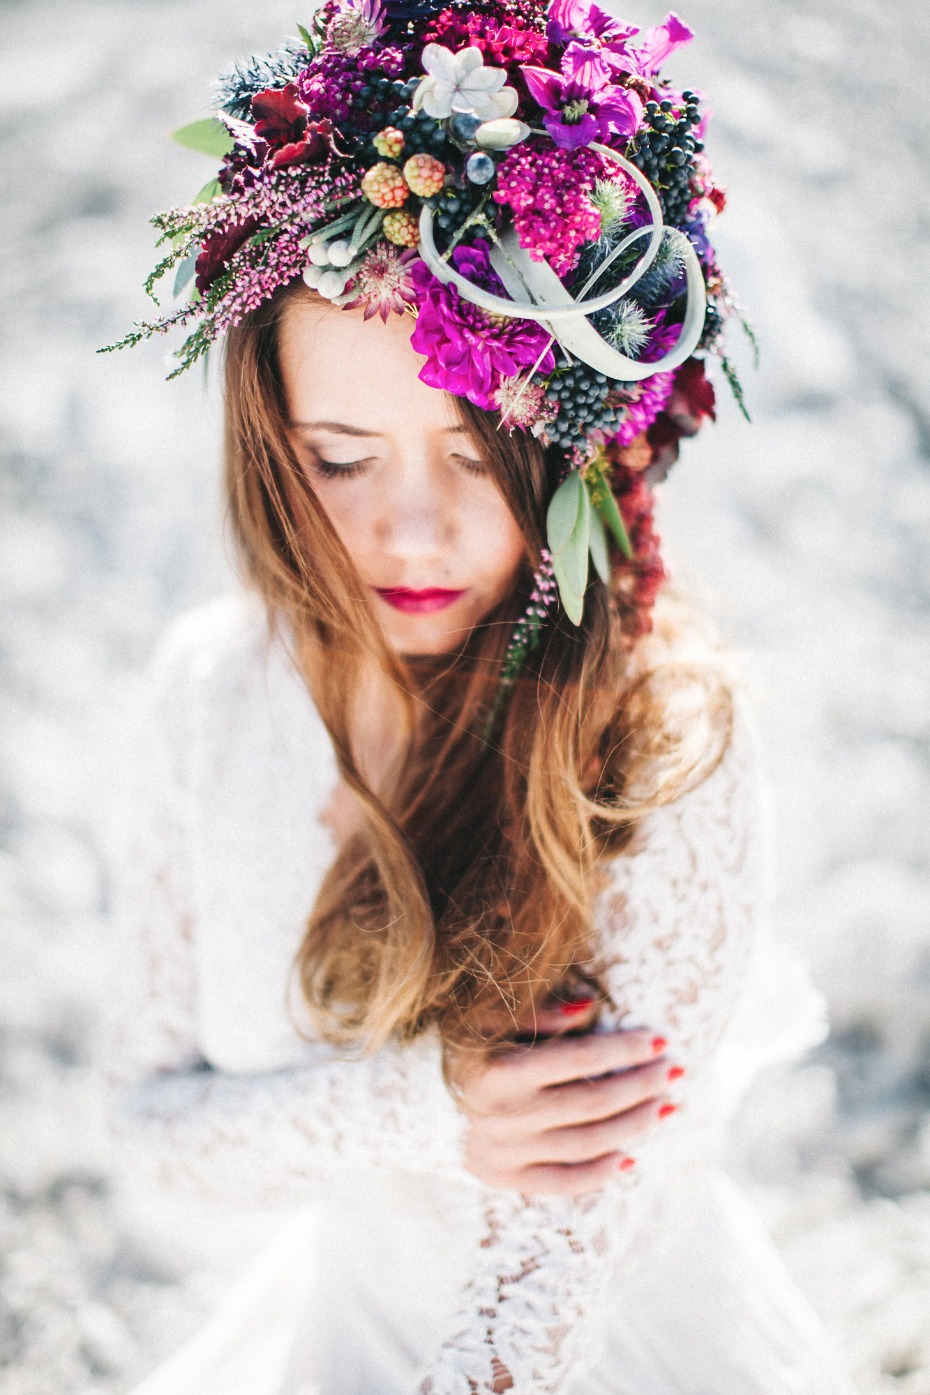 Berry beautiful floral headpiece